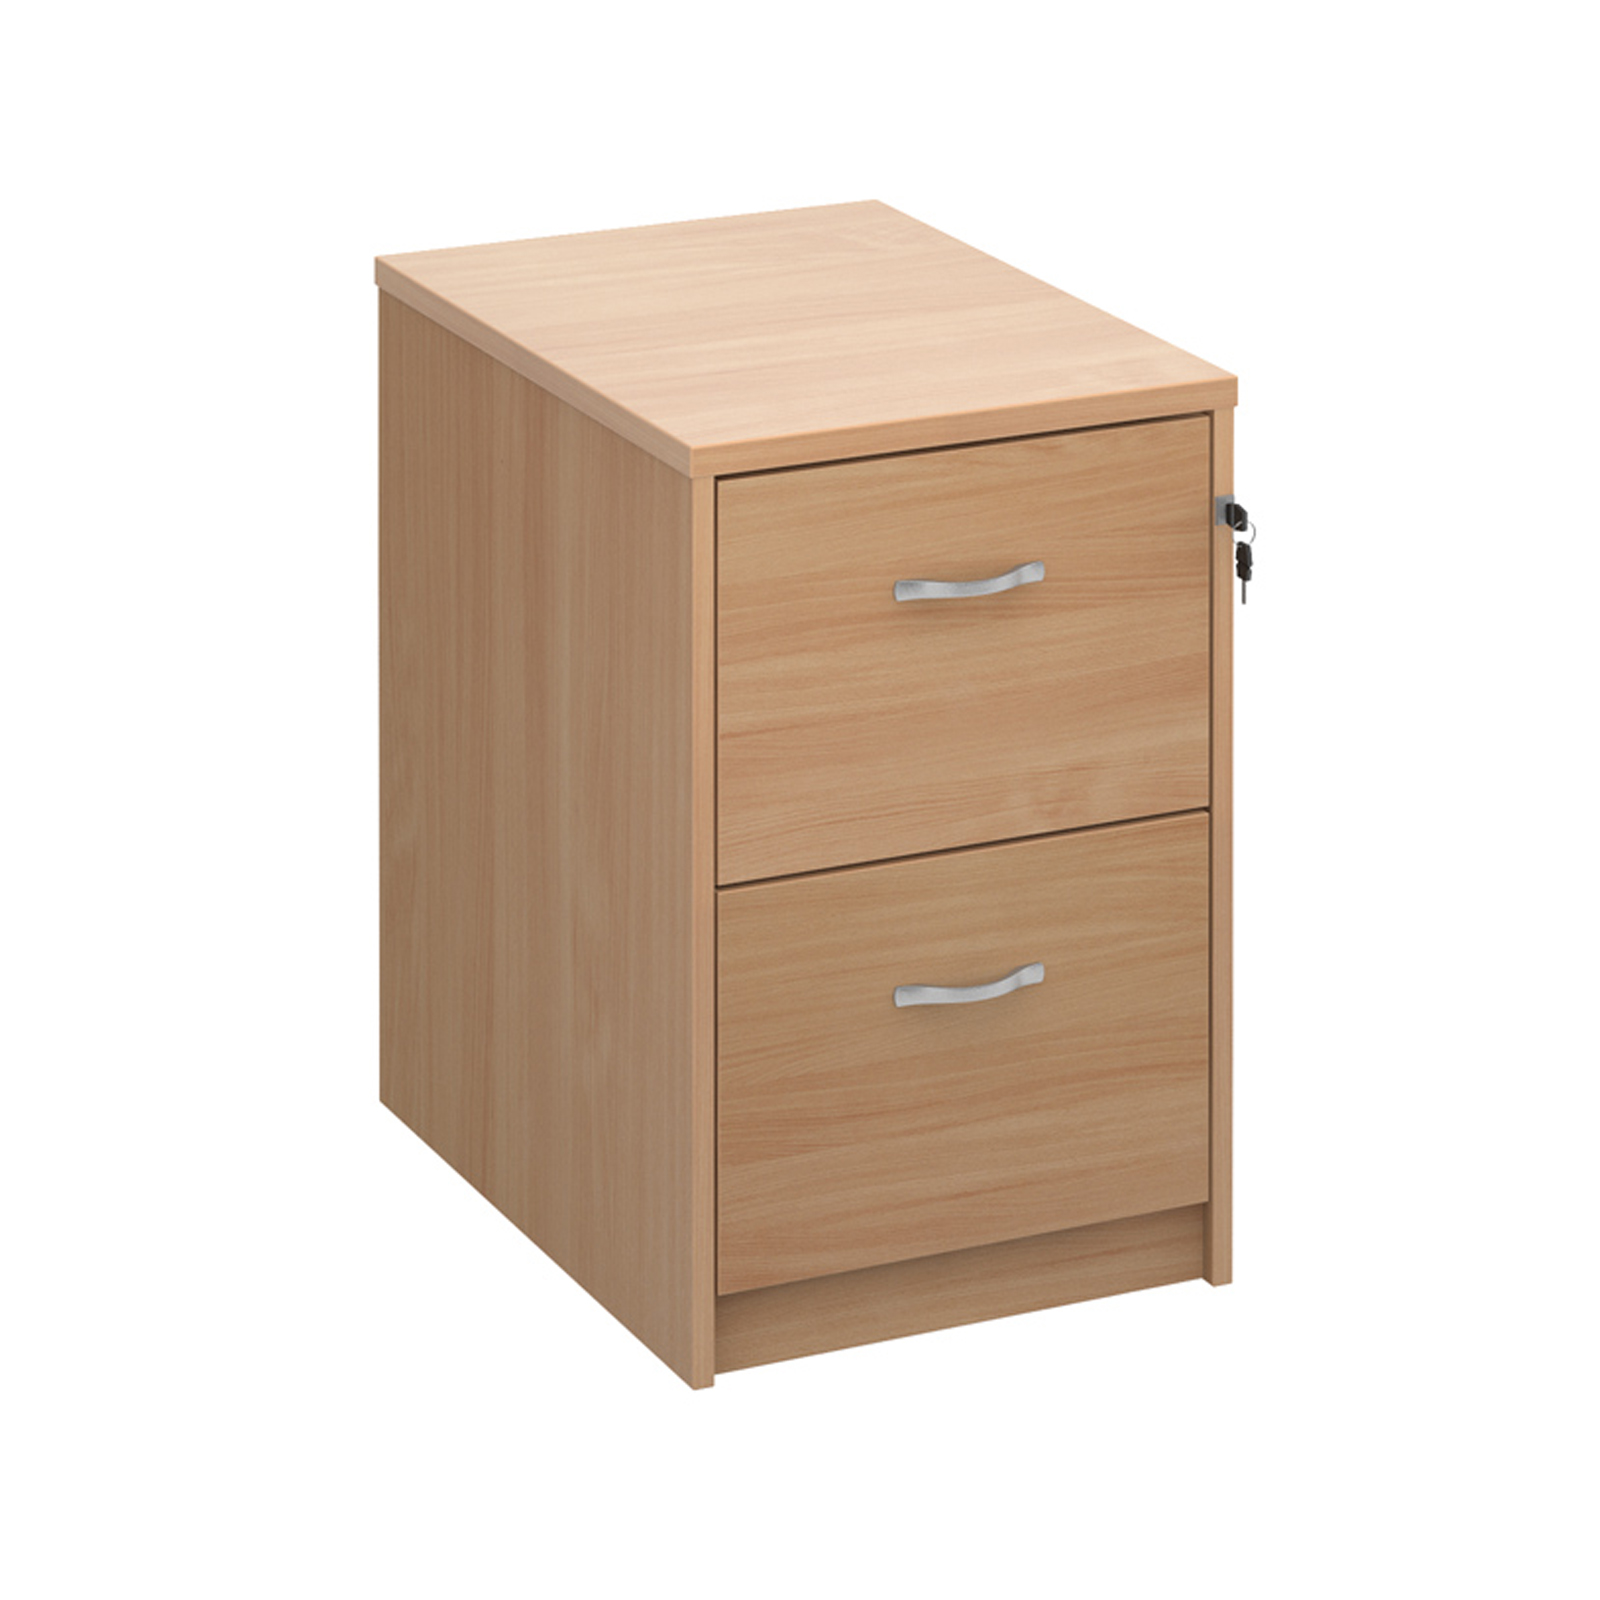 Wood Wooden 2 drawer filing cabinet with silver handles 730mm high - beech